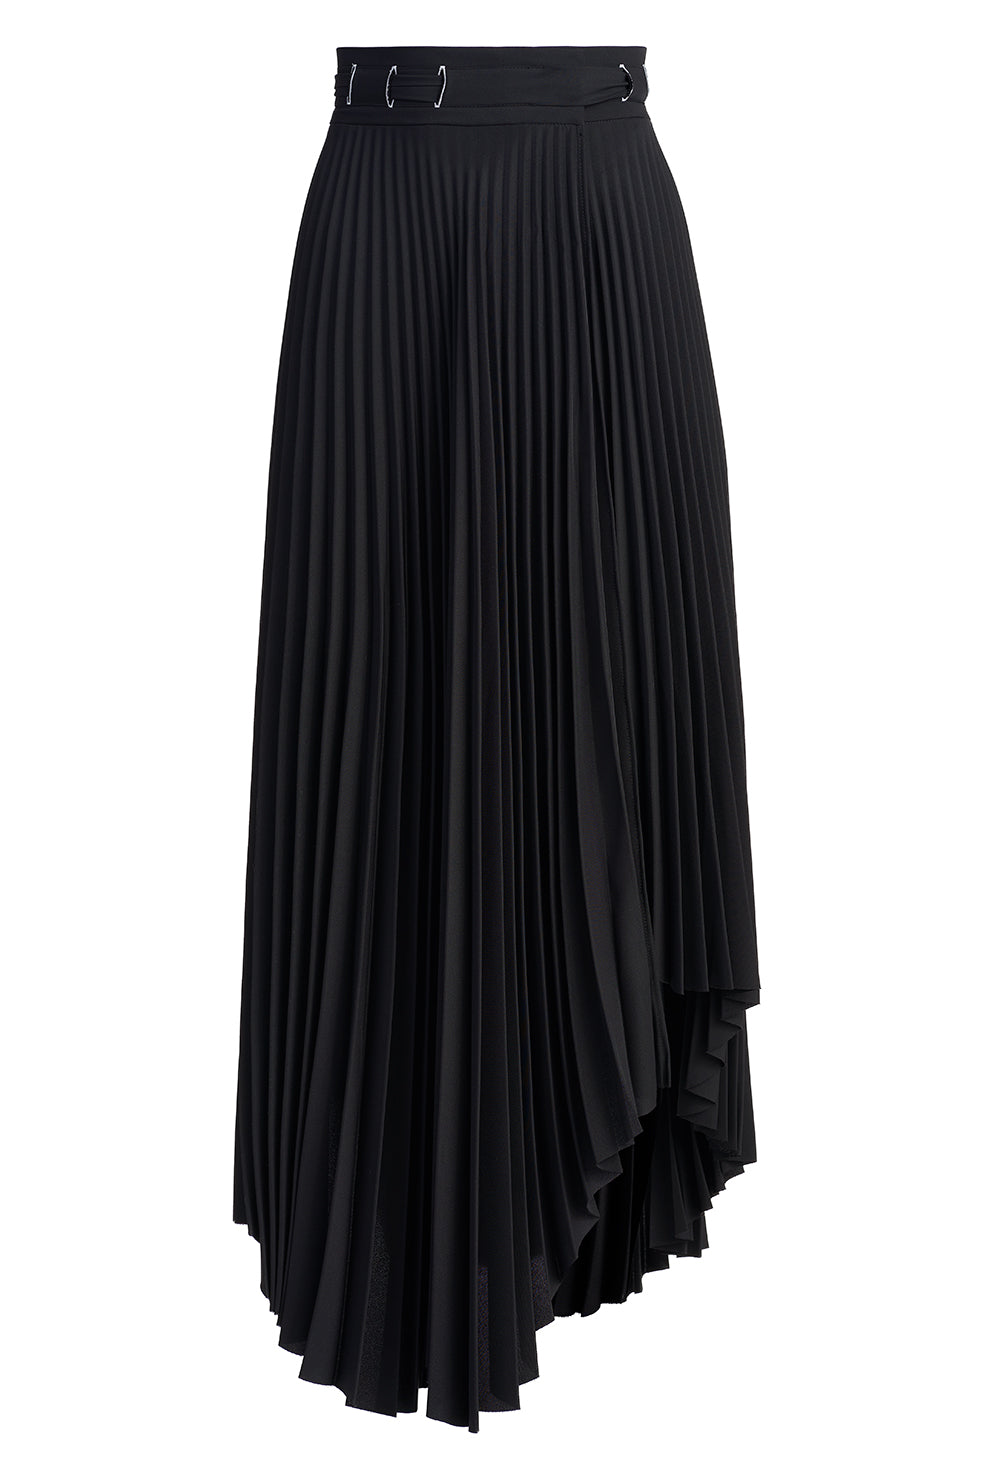 Daisy Black Asymmetric Pleated Long Skirt